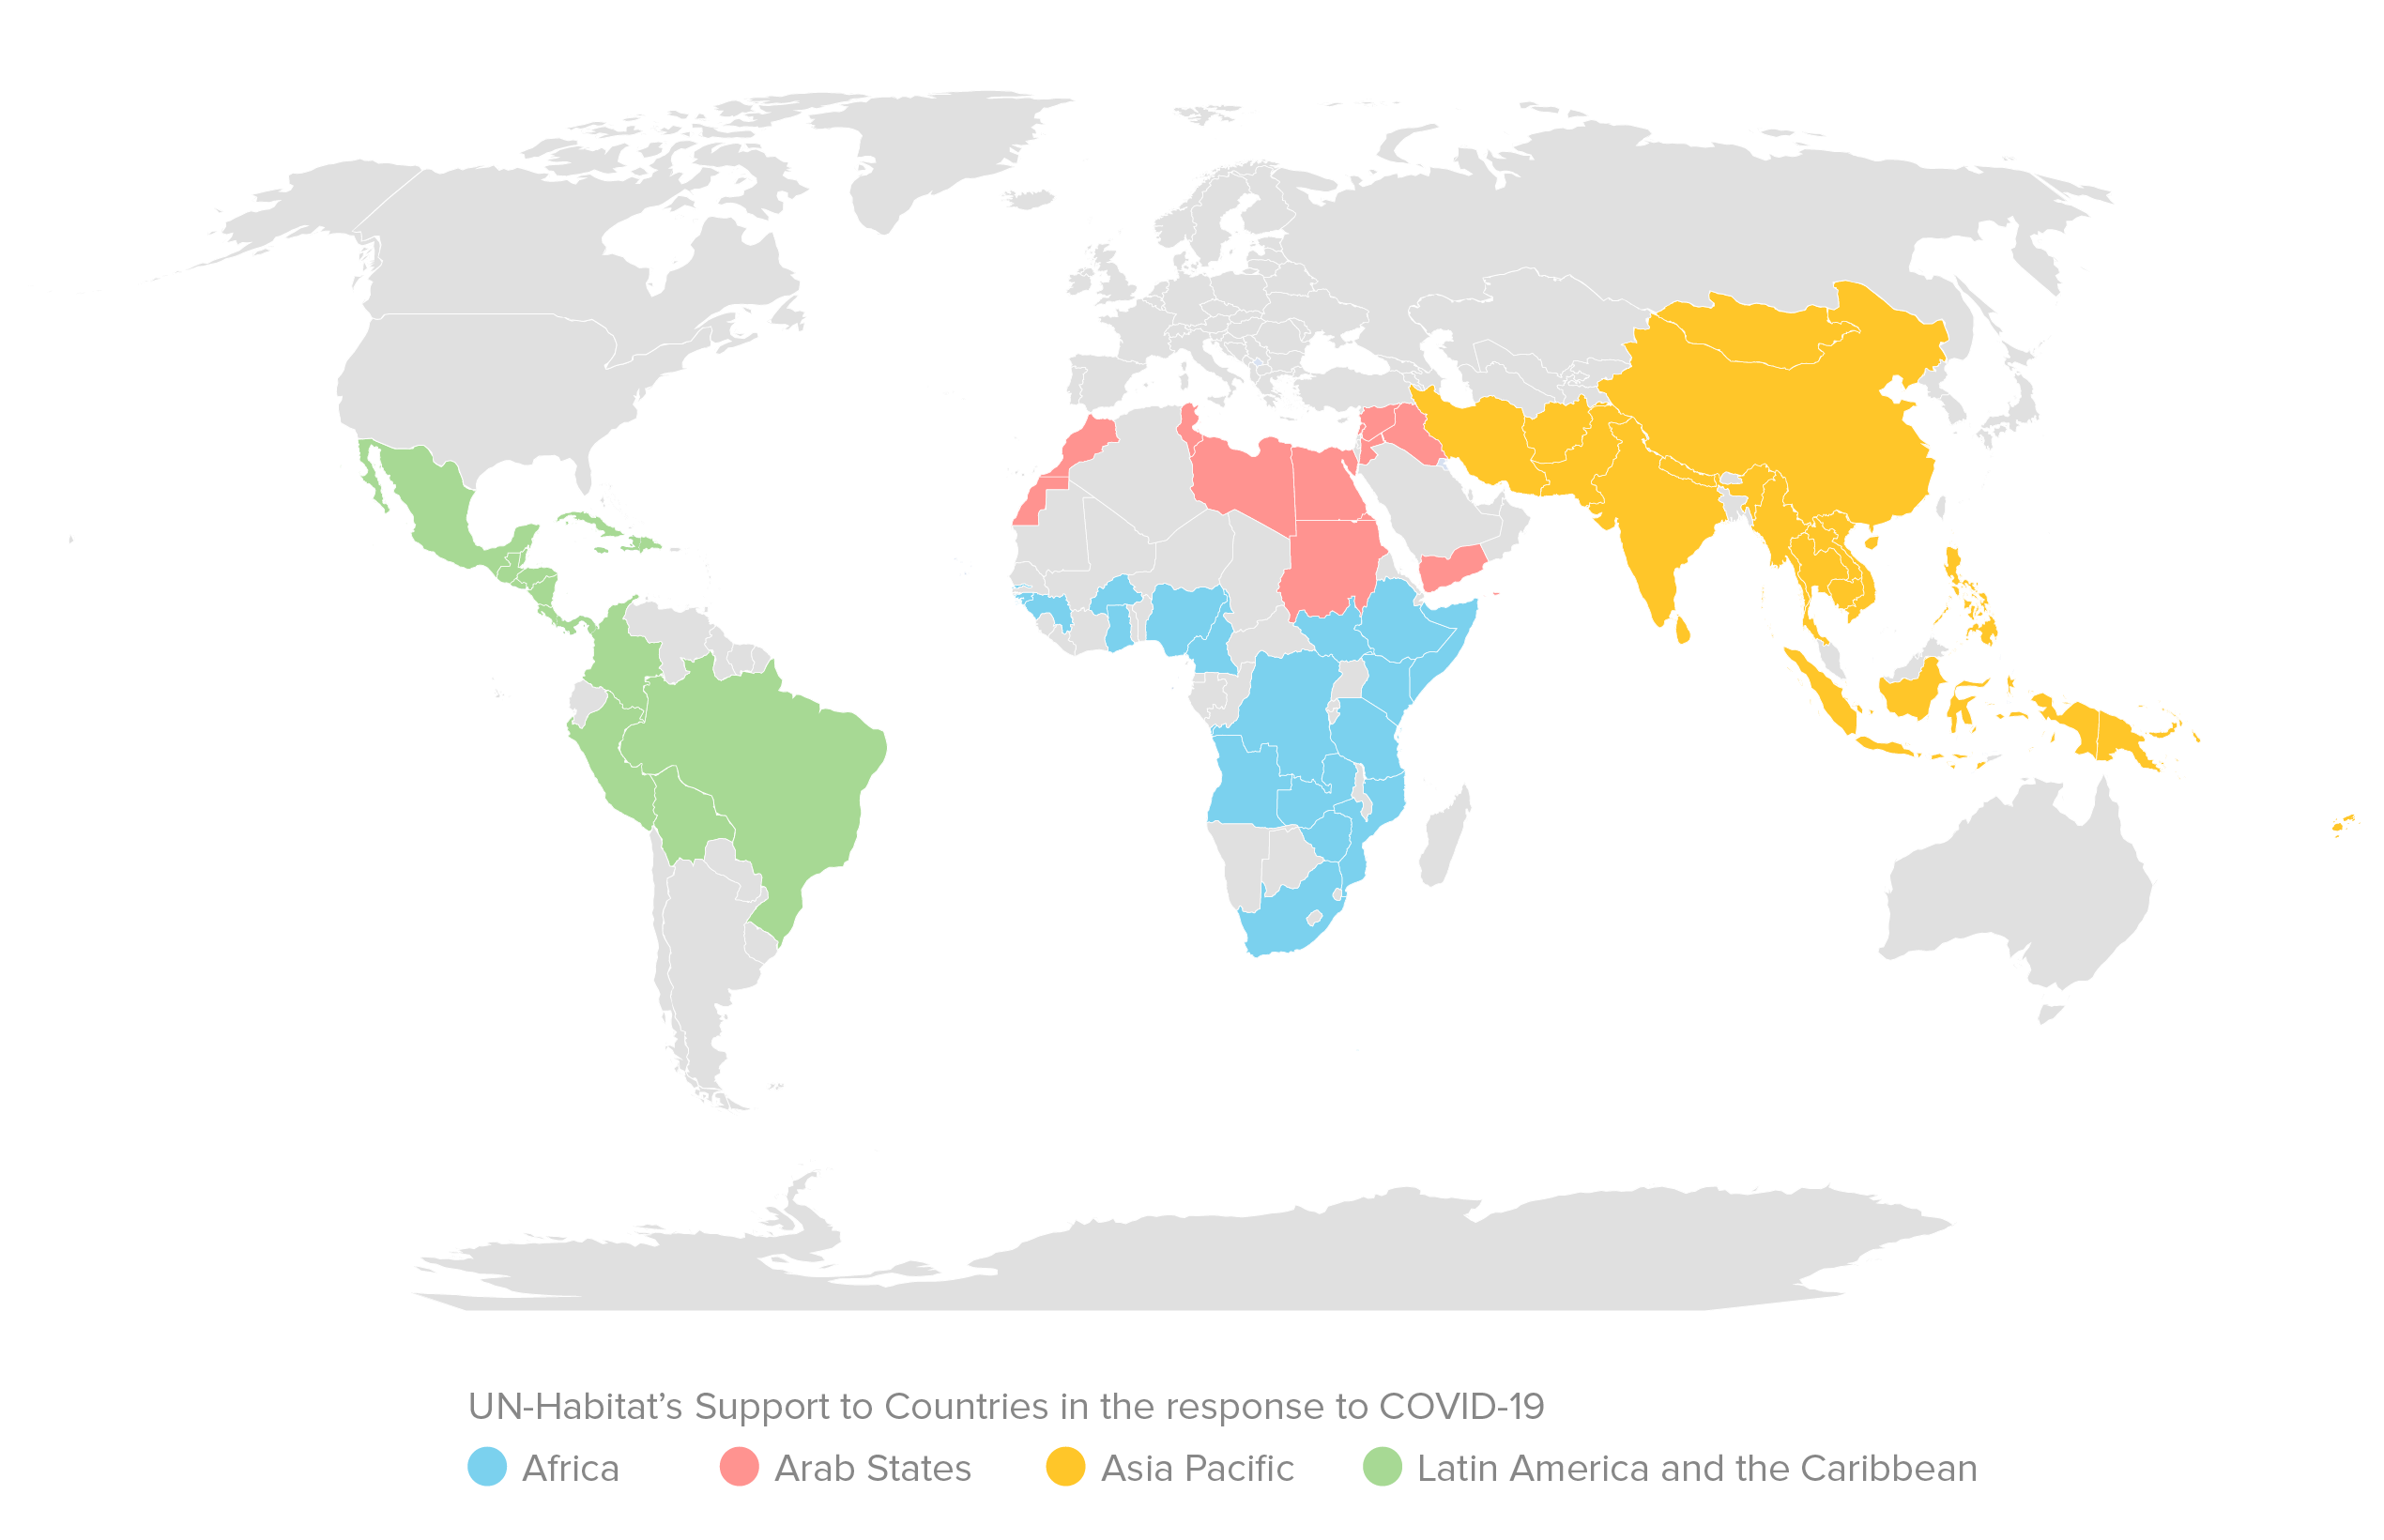 Countries of Action